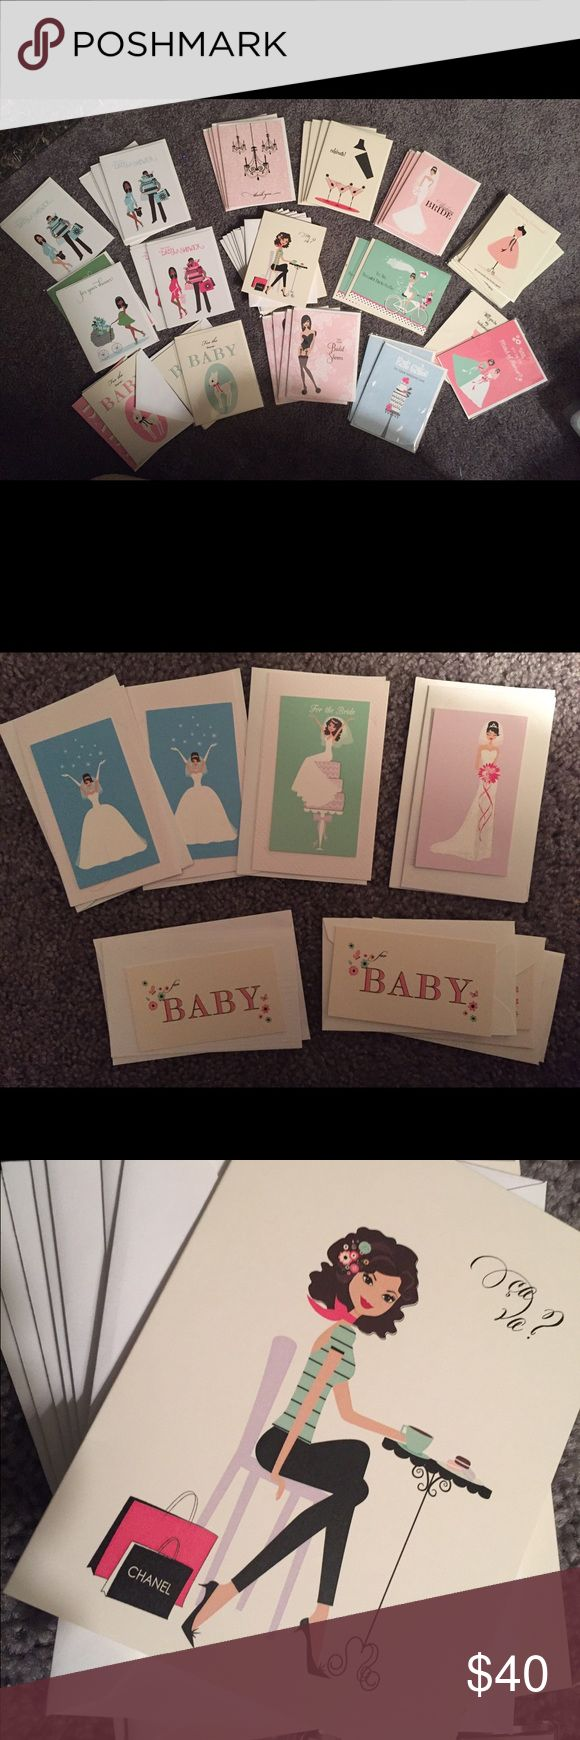 """Collection of """"That Girl"""" Cards - New Collection of """"That Girl"""" Stationary Co. Cards - New condition: new  Collection of 59 Vintage inspired cards with Envelopes....,Very Chic and Unique.   $40.00 for entire collection of NEW 50 large and 9 florist card sizes ....some have multiples.   * New Baby  * For your Baby Shower - multiples * Marriage * Wedding Day  - multiples  * Bridesmaids - multiples * For the Bride  * Congratulations  * Wedding * Thank You - multiples * Bridal Shower  * French…"""